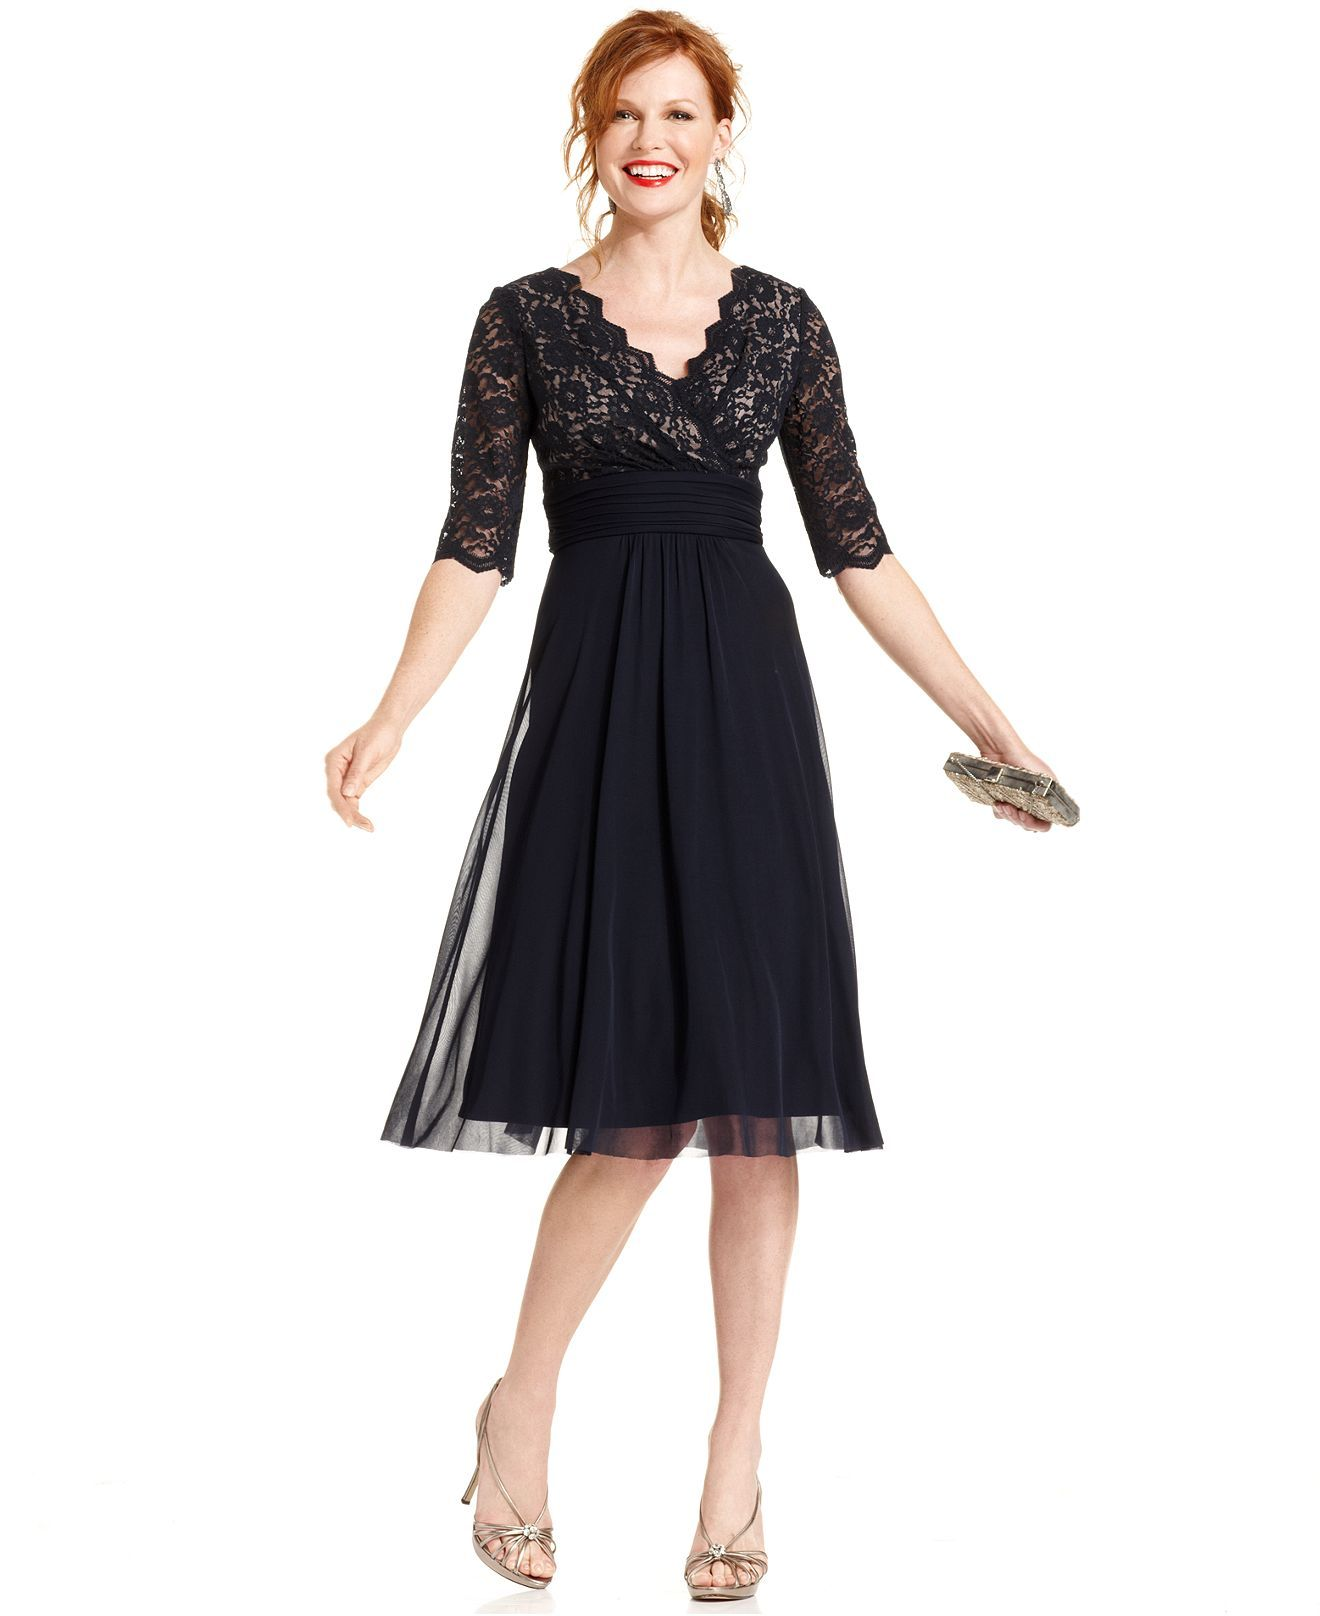 c3931f084770 Jessica Howard Lace Empire-Waist Dress - Dresses - Women - Macy's